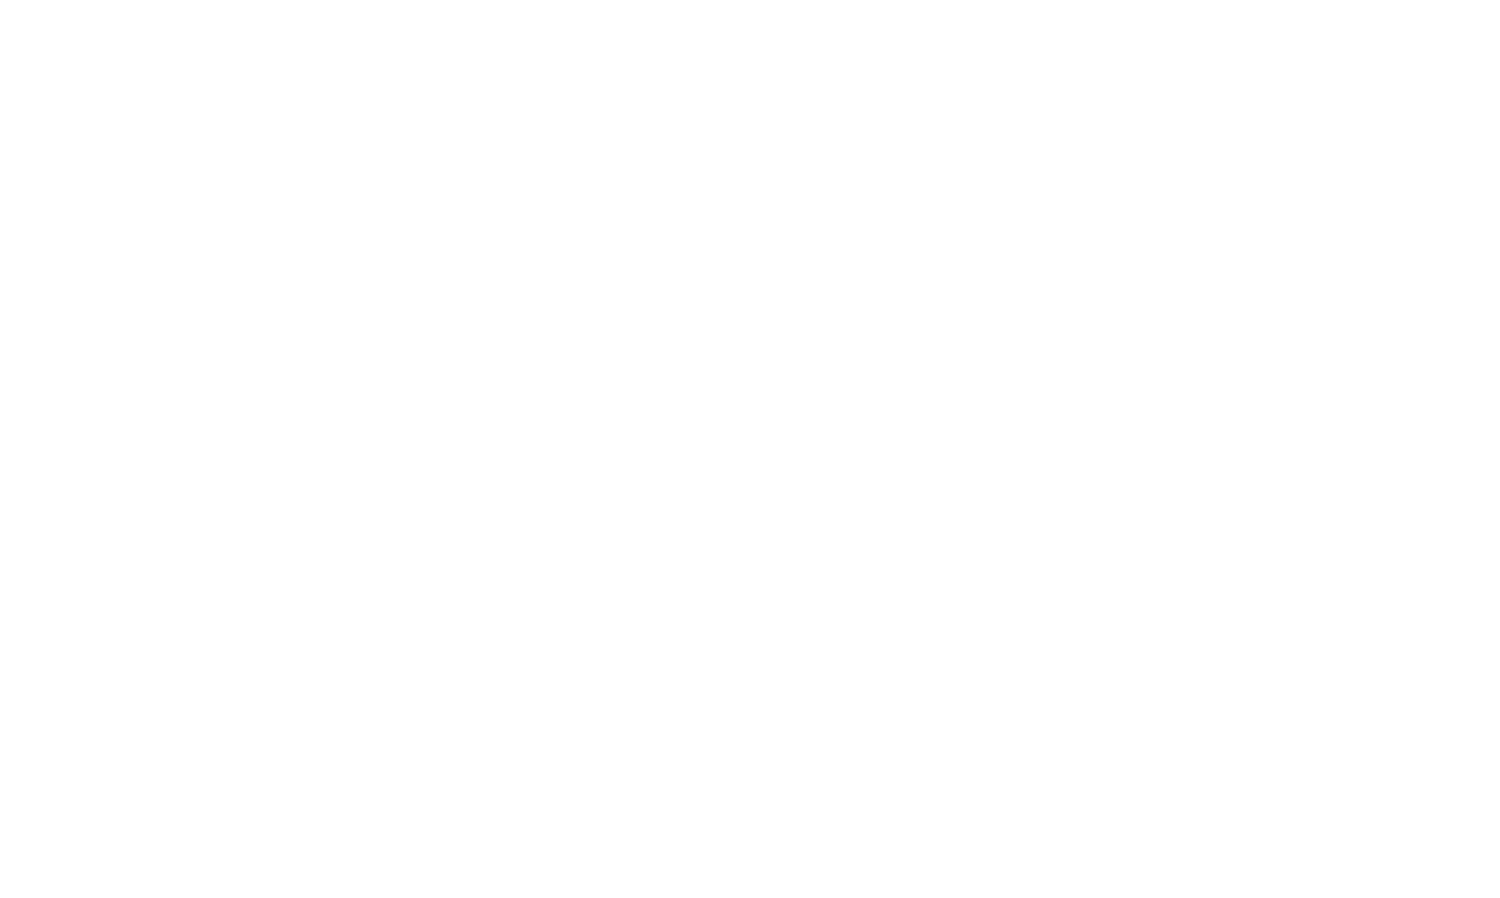 Mac The Camera Guy Photo Booths - Your Mobile Indoor outdoor  Professional Photo Booth Service